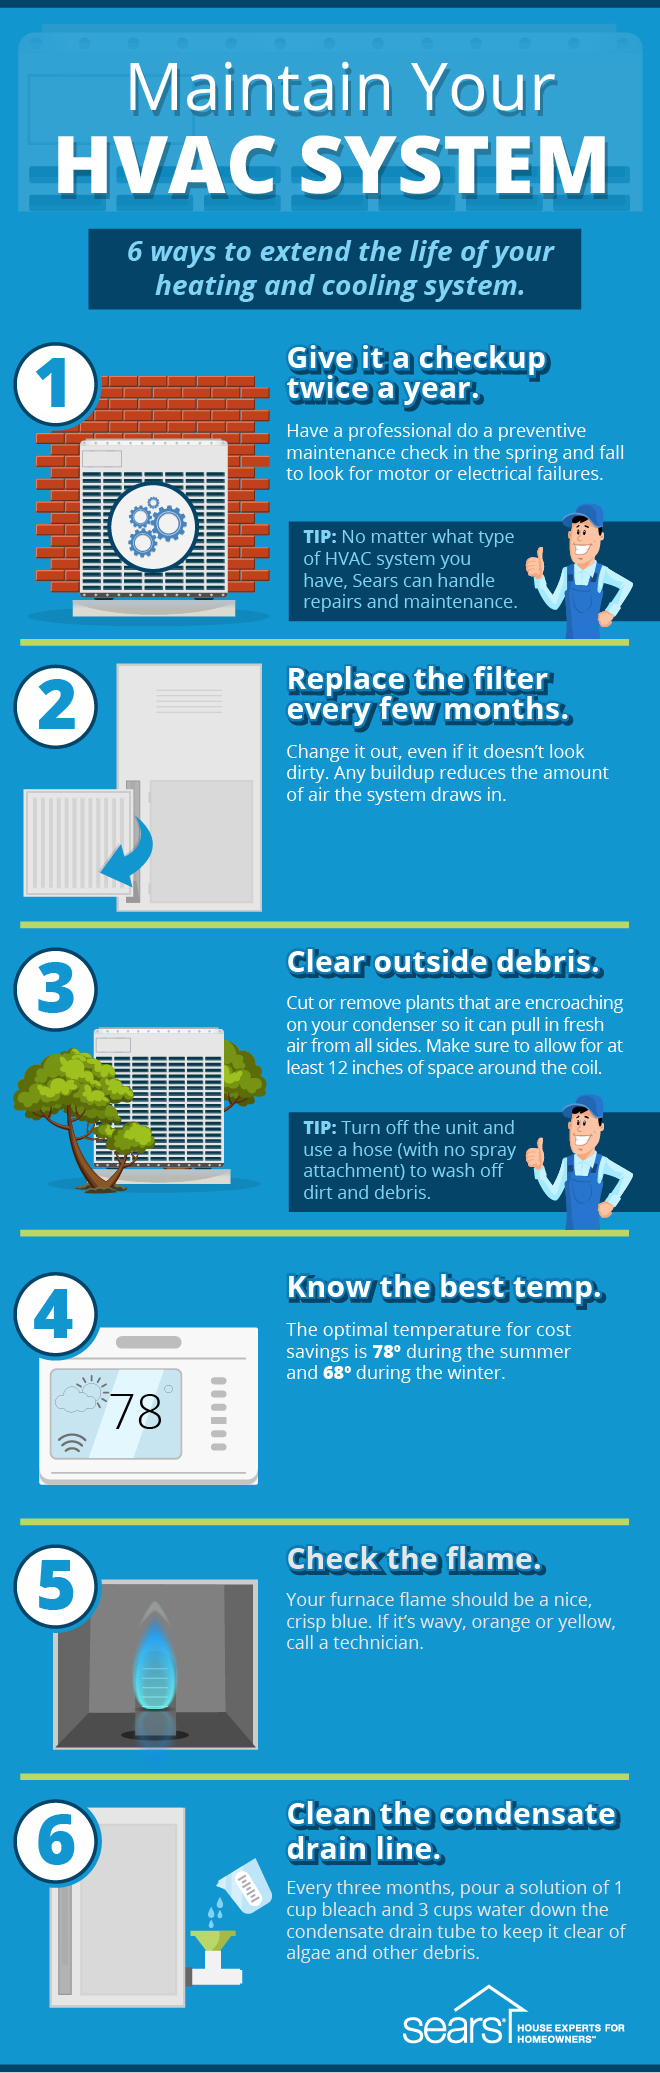 Maintain your HVAC system